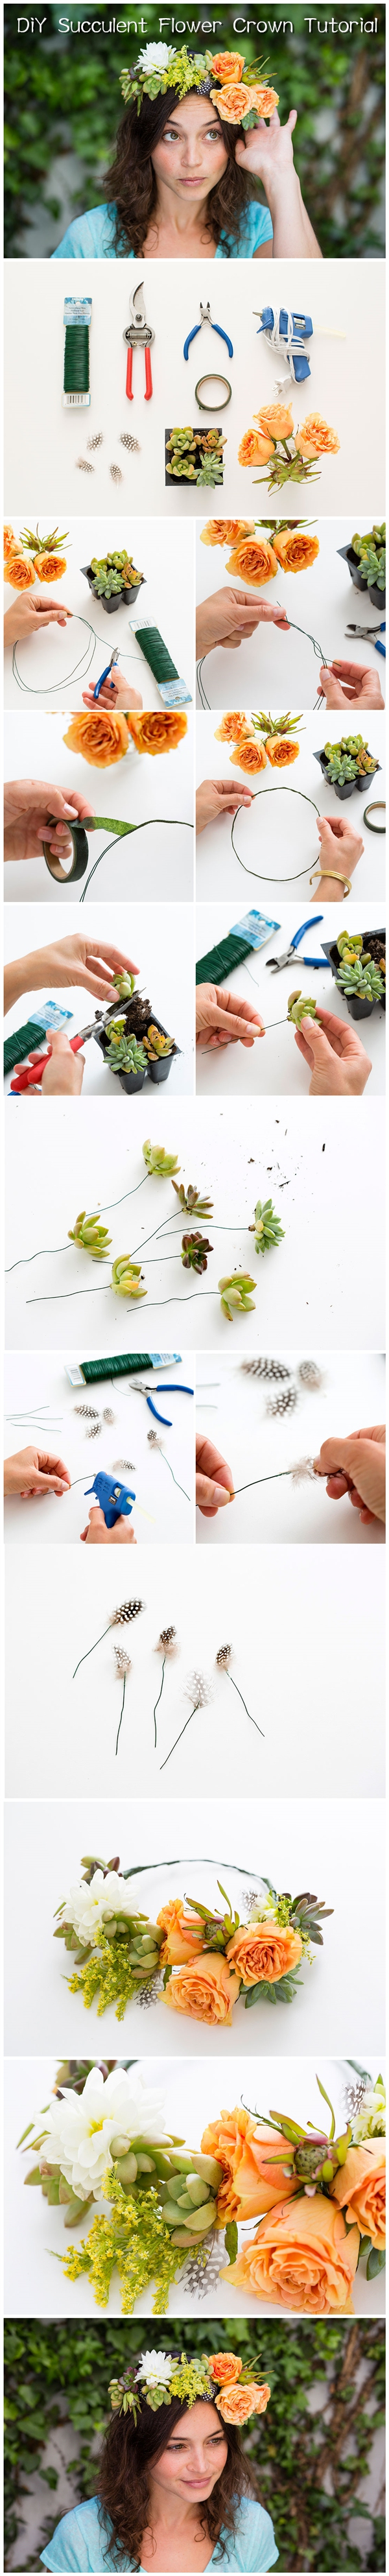 DiY Succulent Flower Crown Tutorial